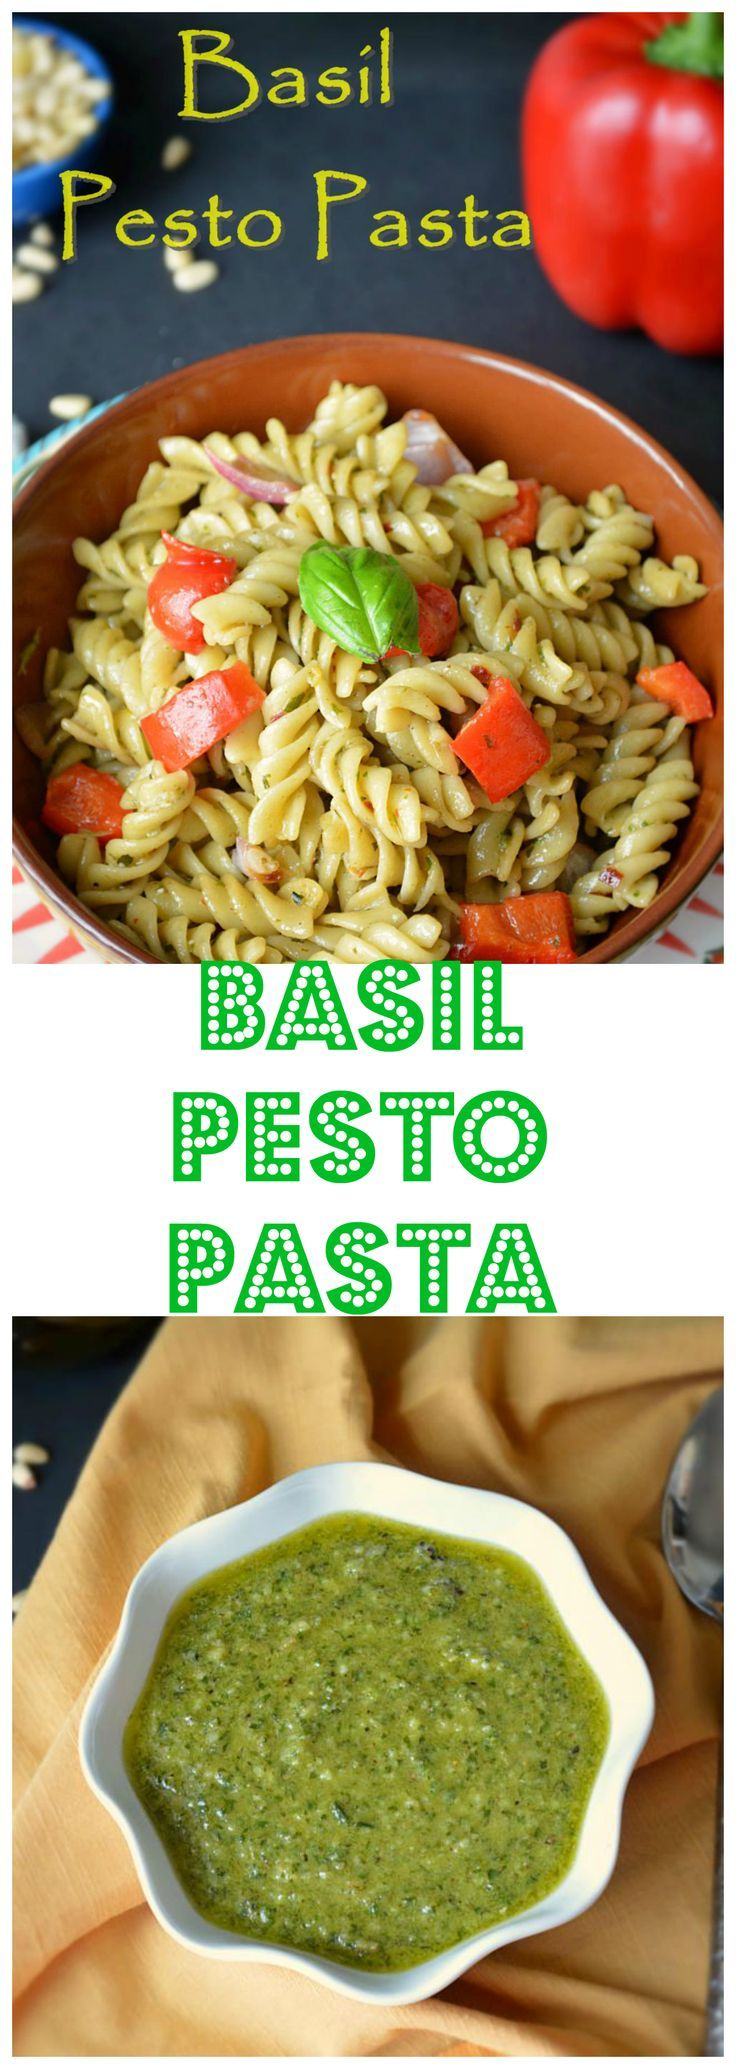 Enjoy This One Pot Meal Prepared With Homemade Basil Pesto And Combined With Caramelized Onion And Red Pesto Pasta Recipes Basil Pesto Pasta Recipe Pesto Pasta